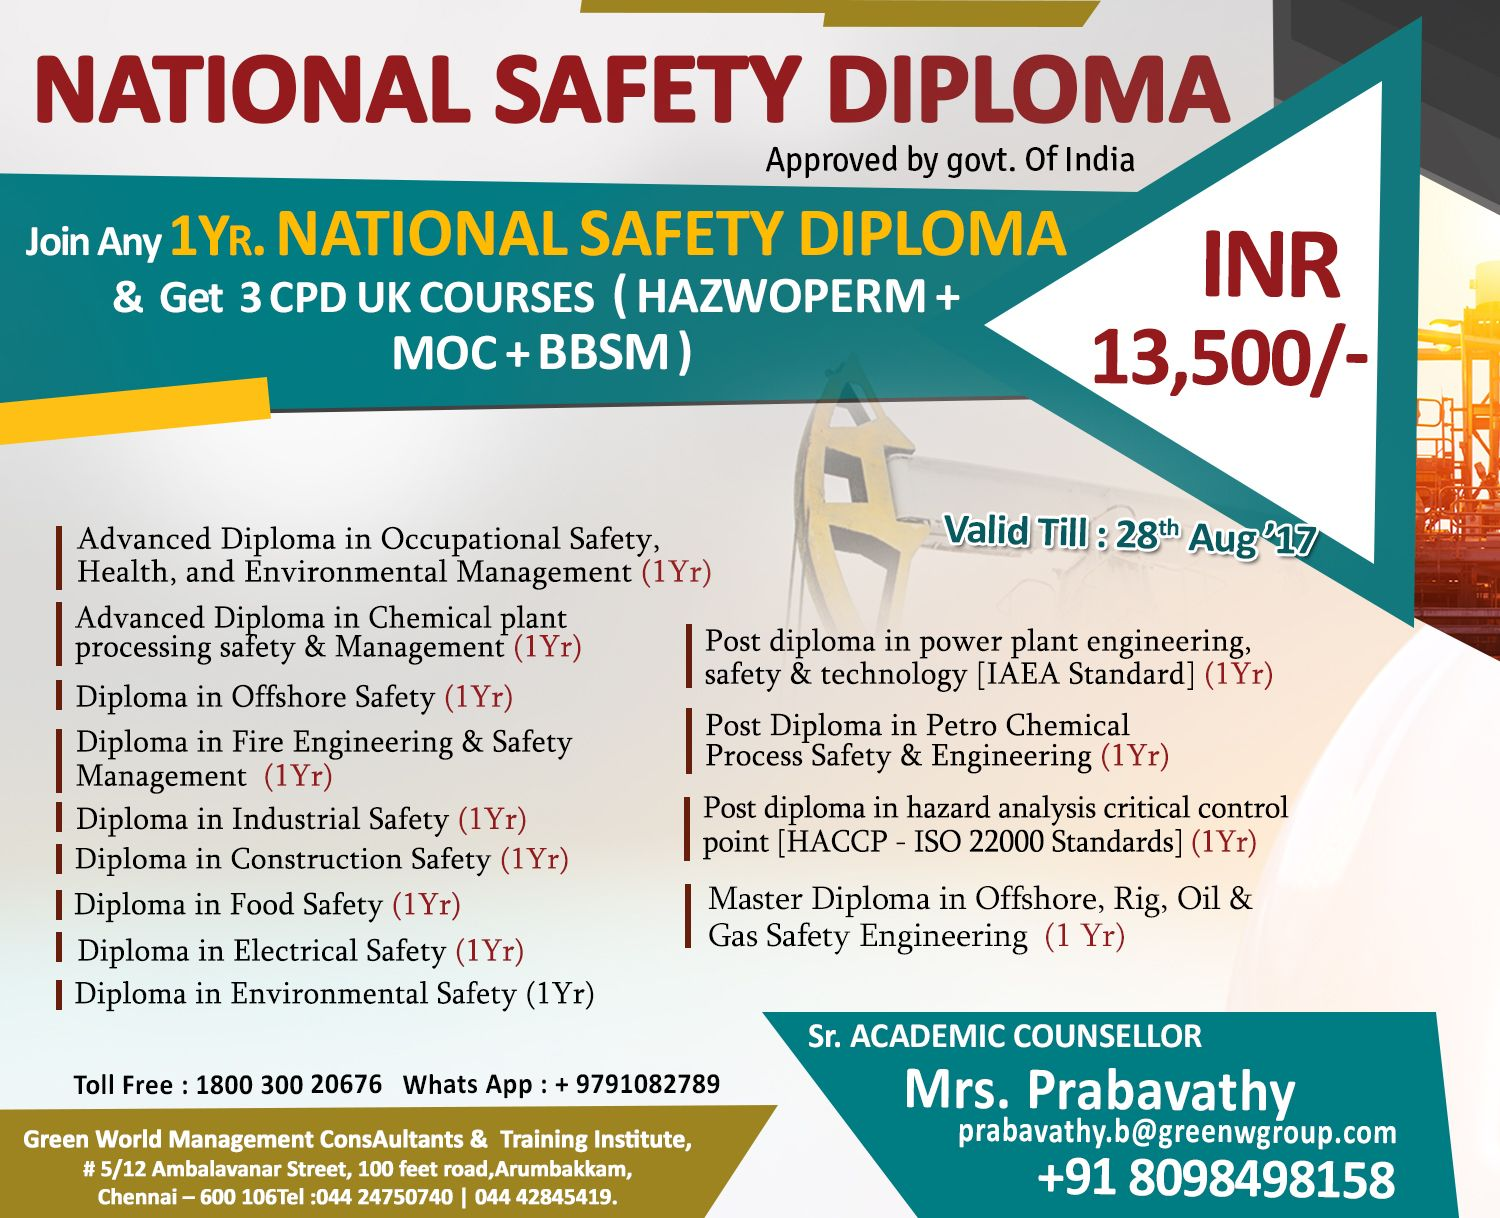 Safety Diploma Course In India Green World Group GWG Is The Leading Training Center For Professional Courses UAE And Dubai